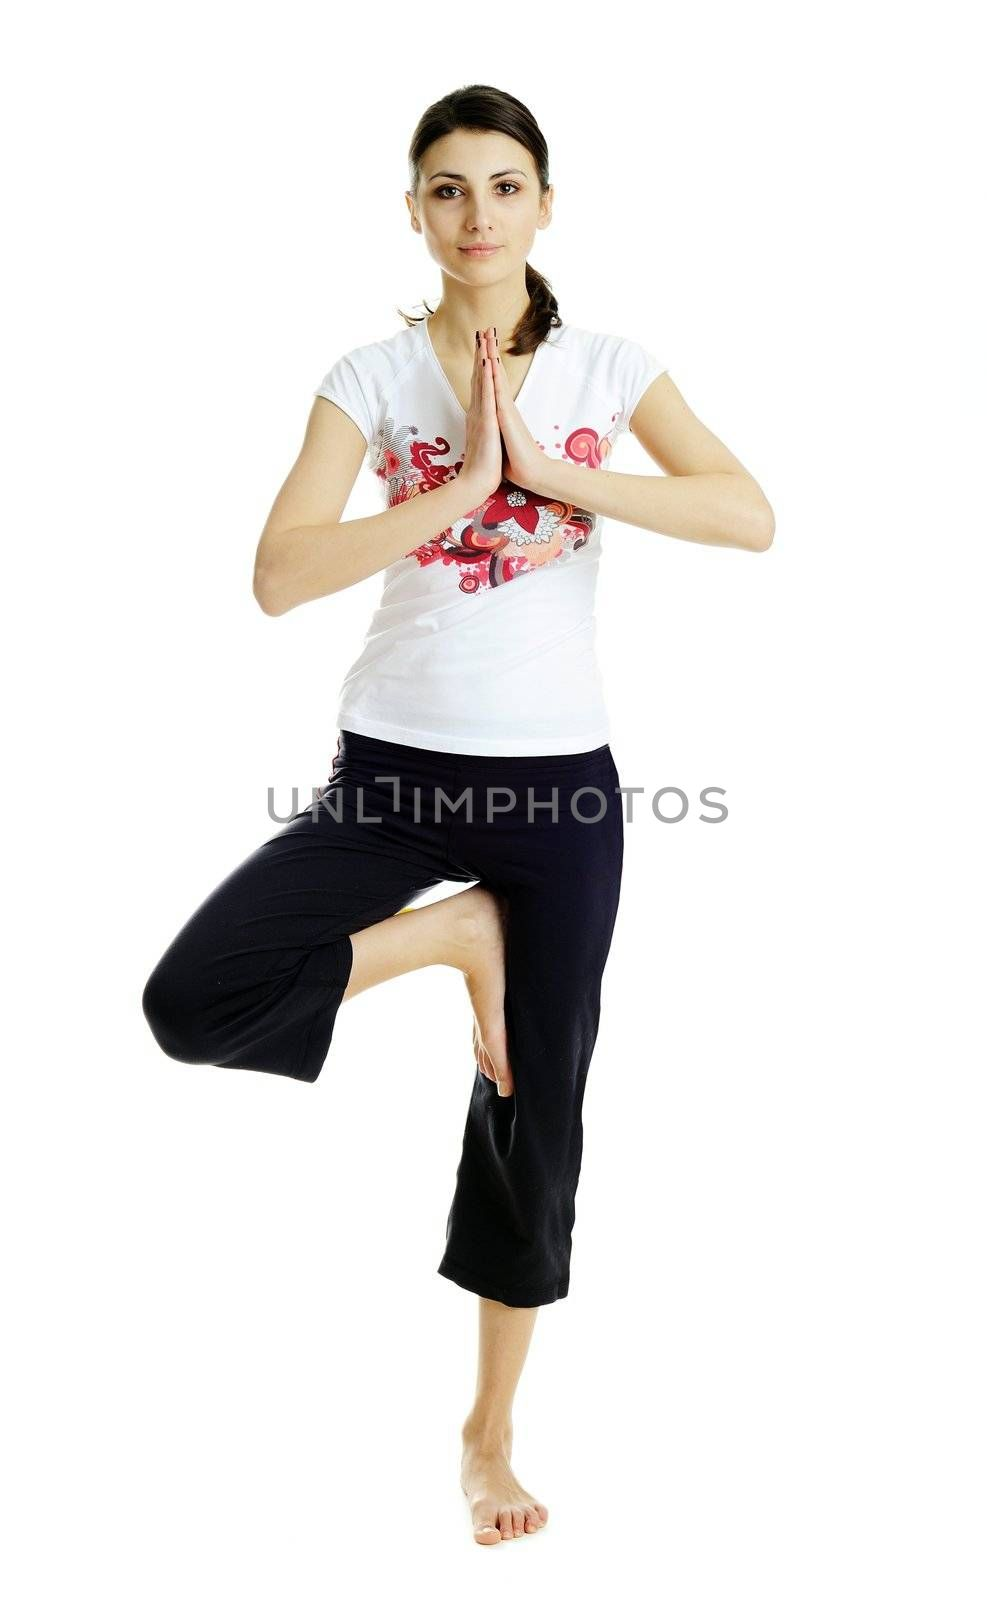 An image of nice woman practicing Yoga exercises